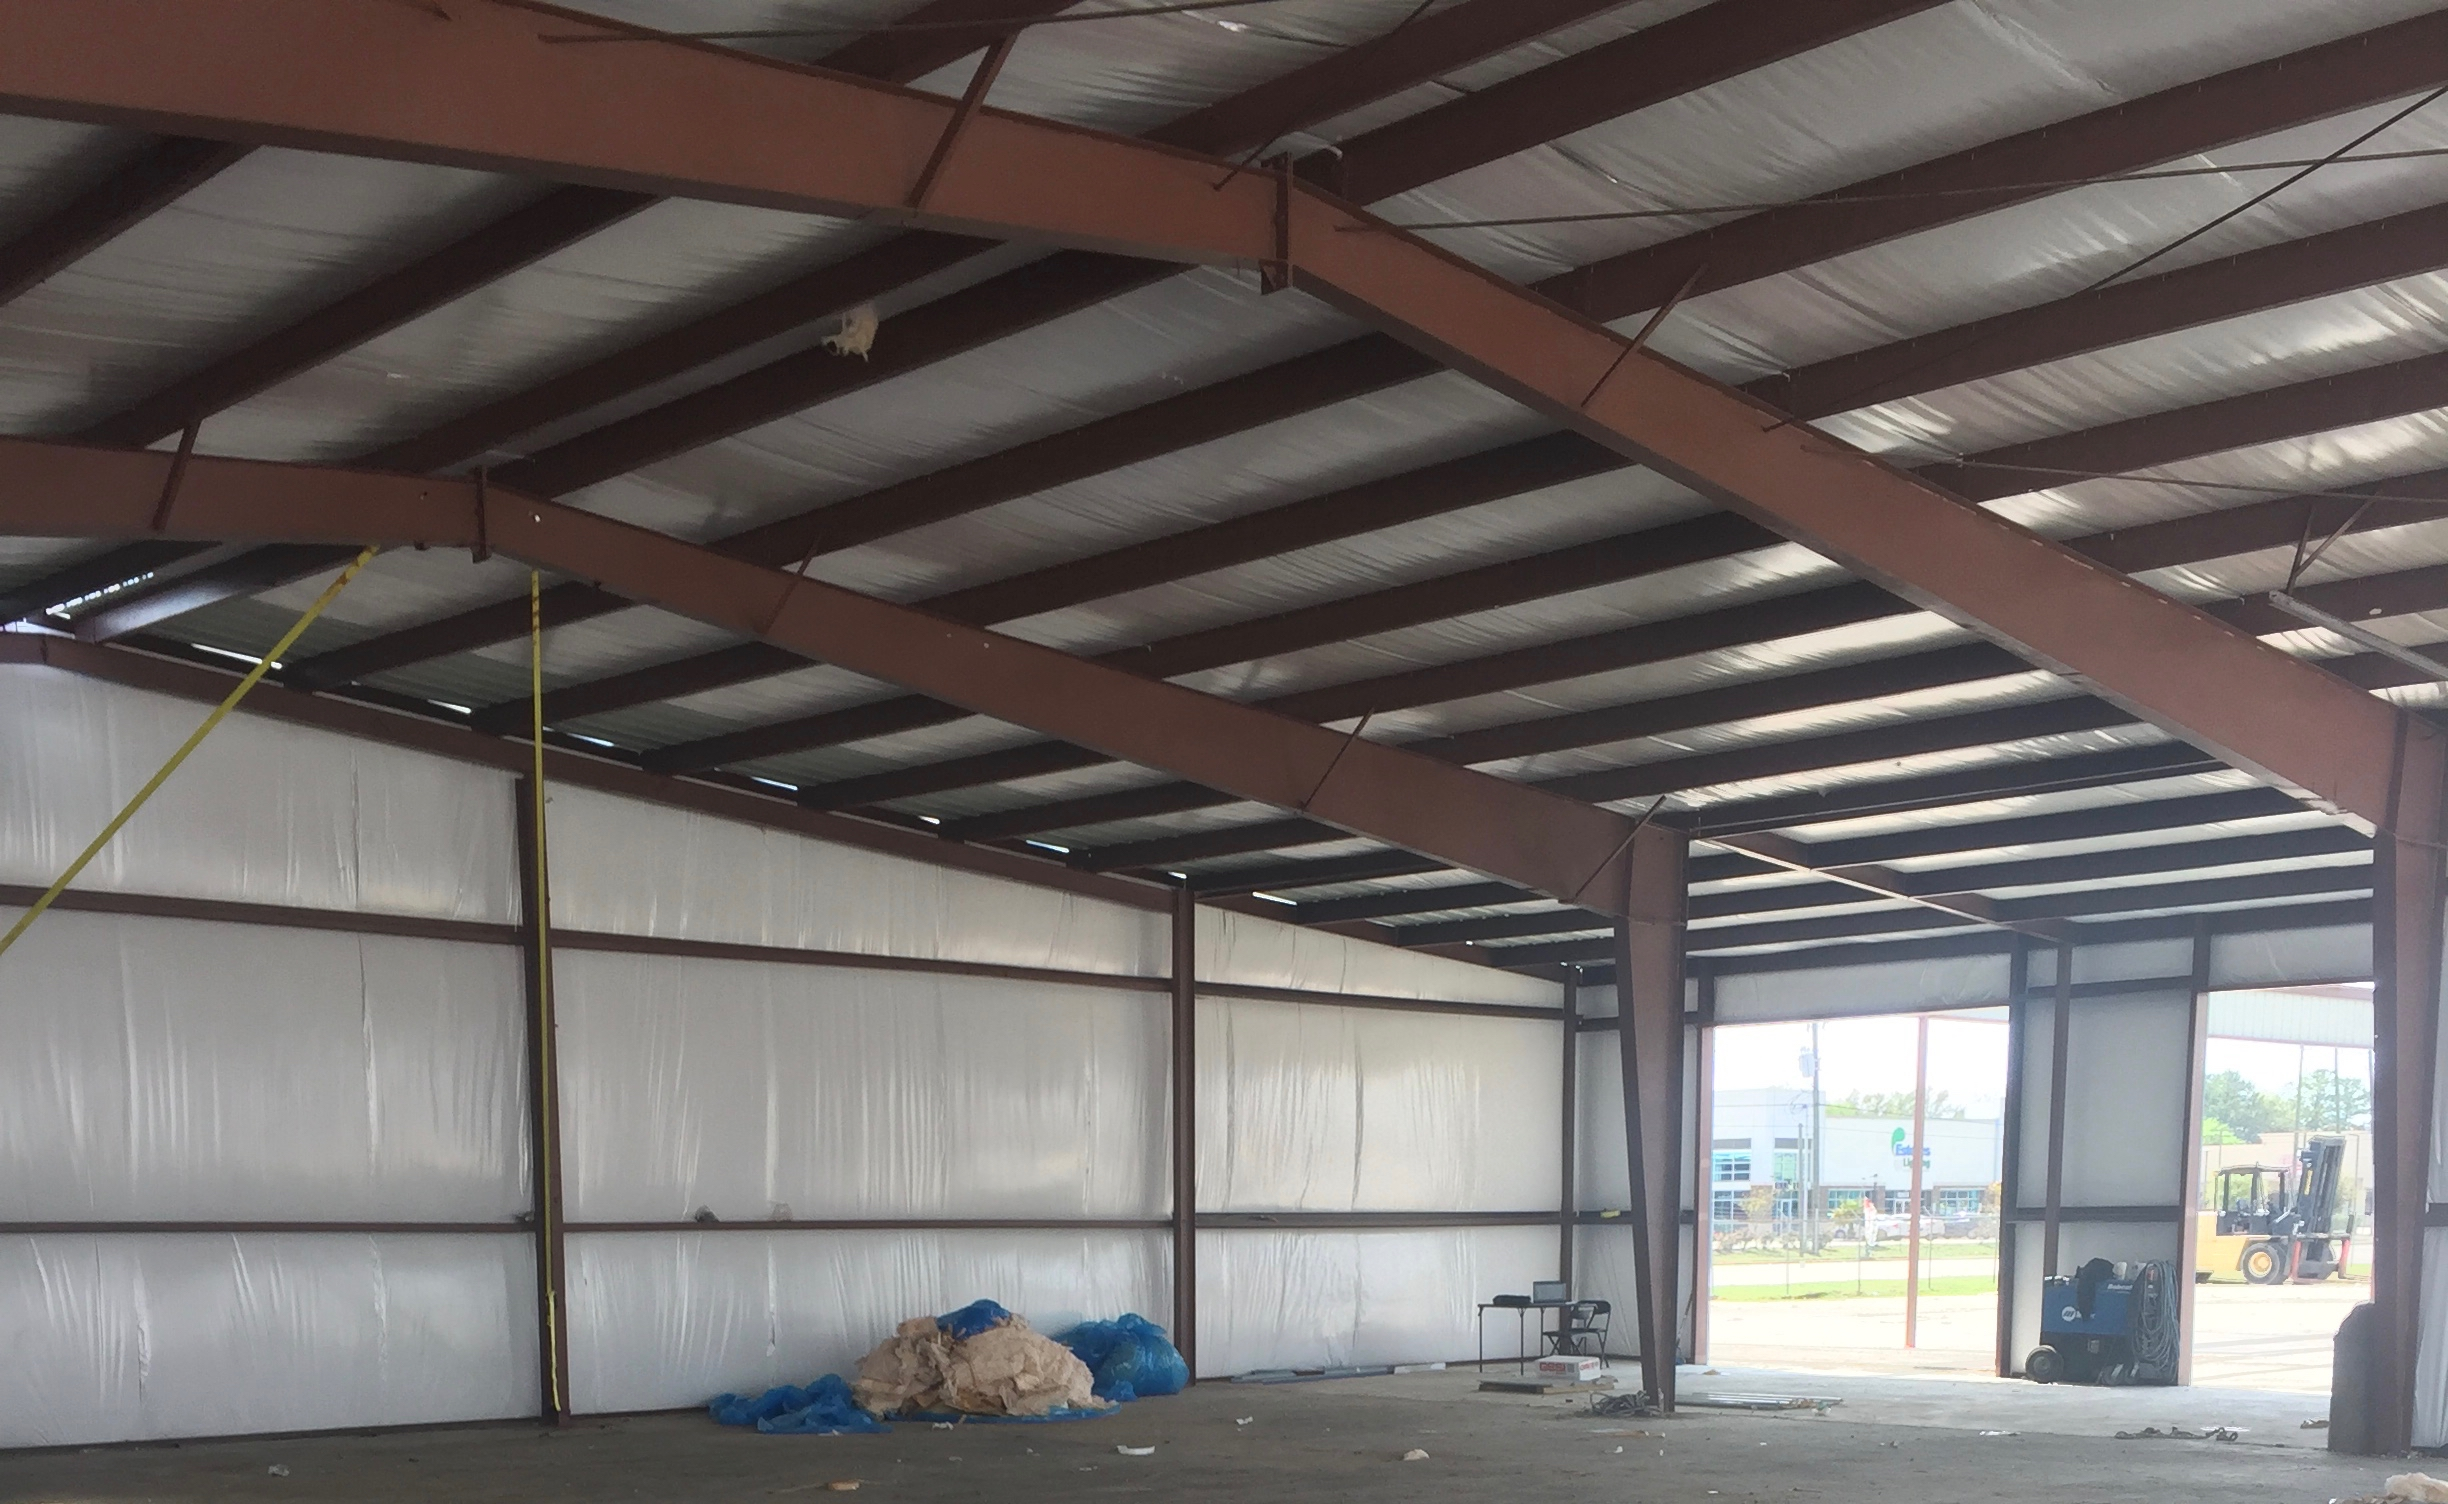 Metal building insulation replacement renovation. in process